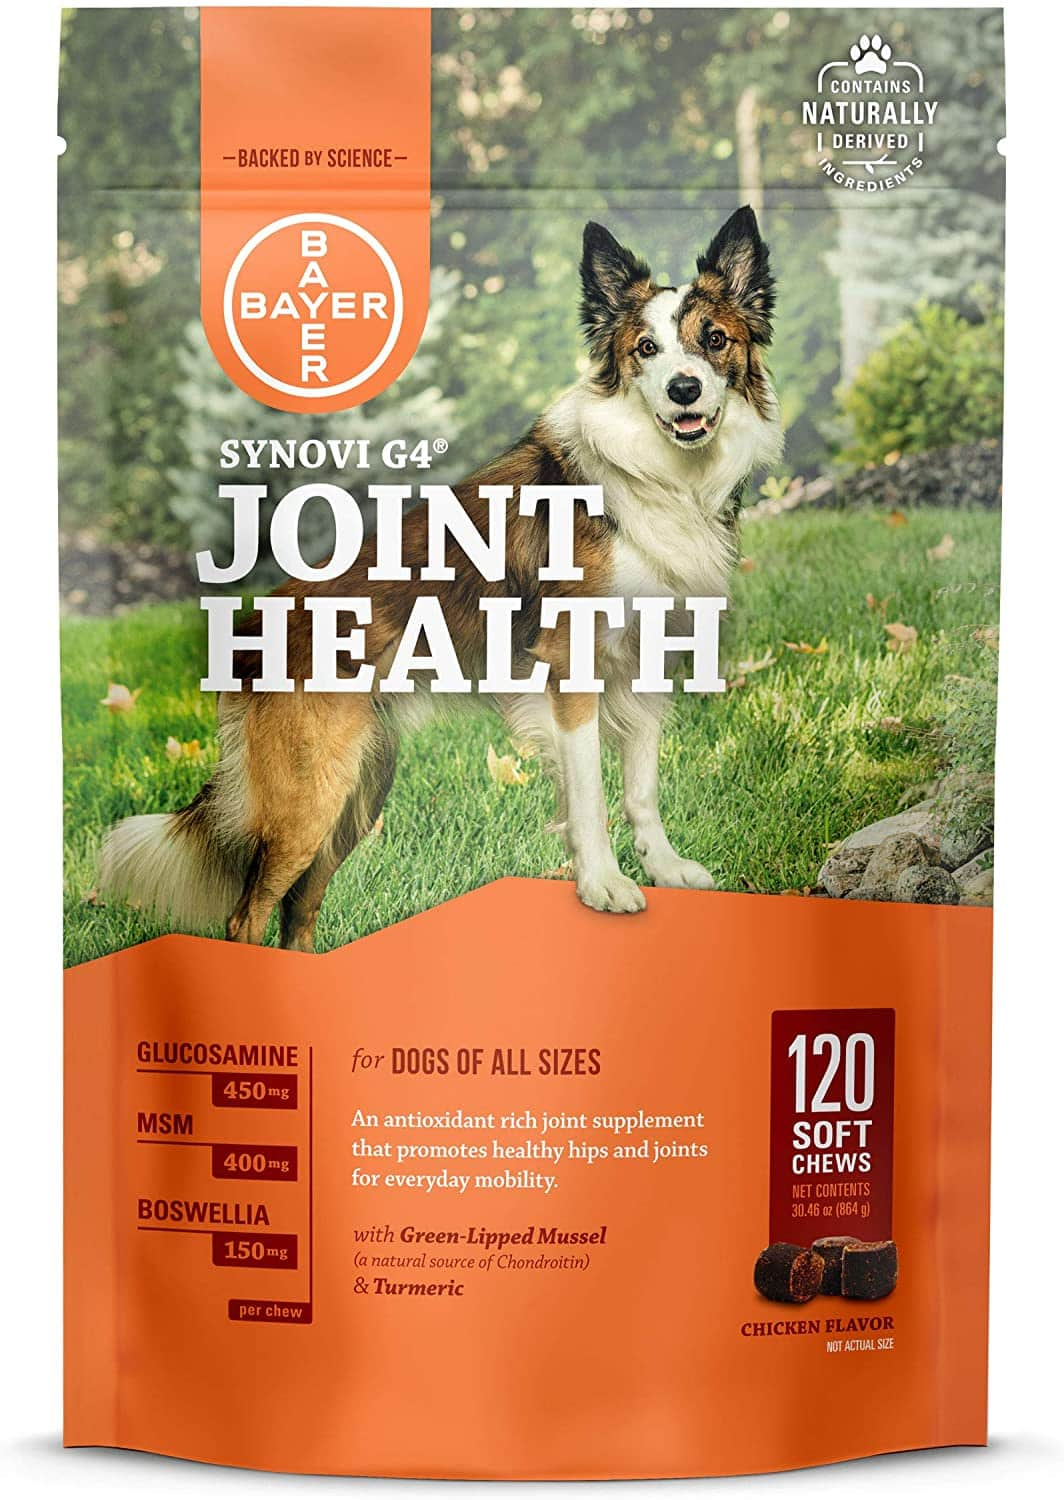 Bayer Synovi G4 Joint Supplements for Dogs